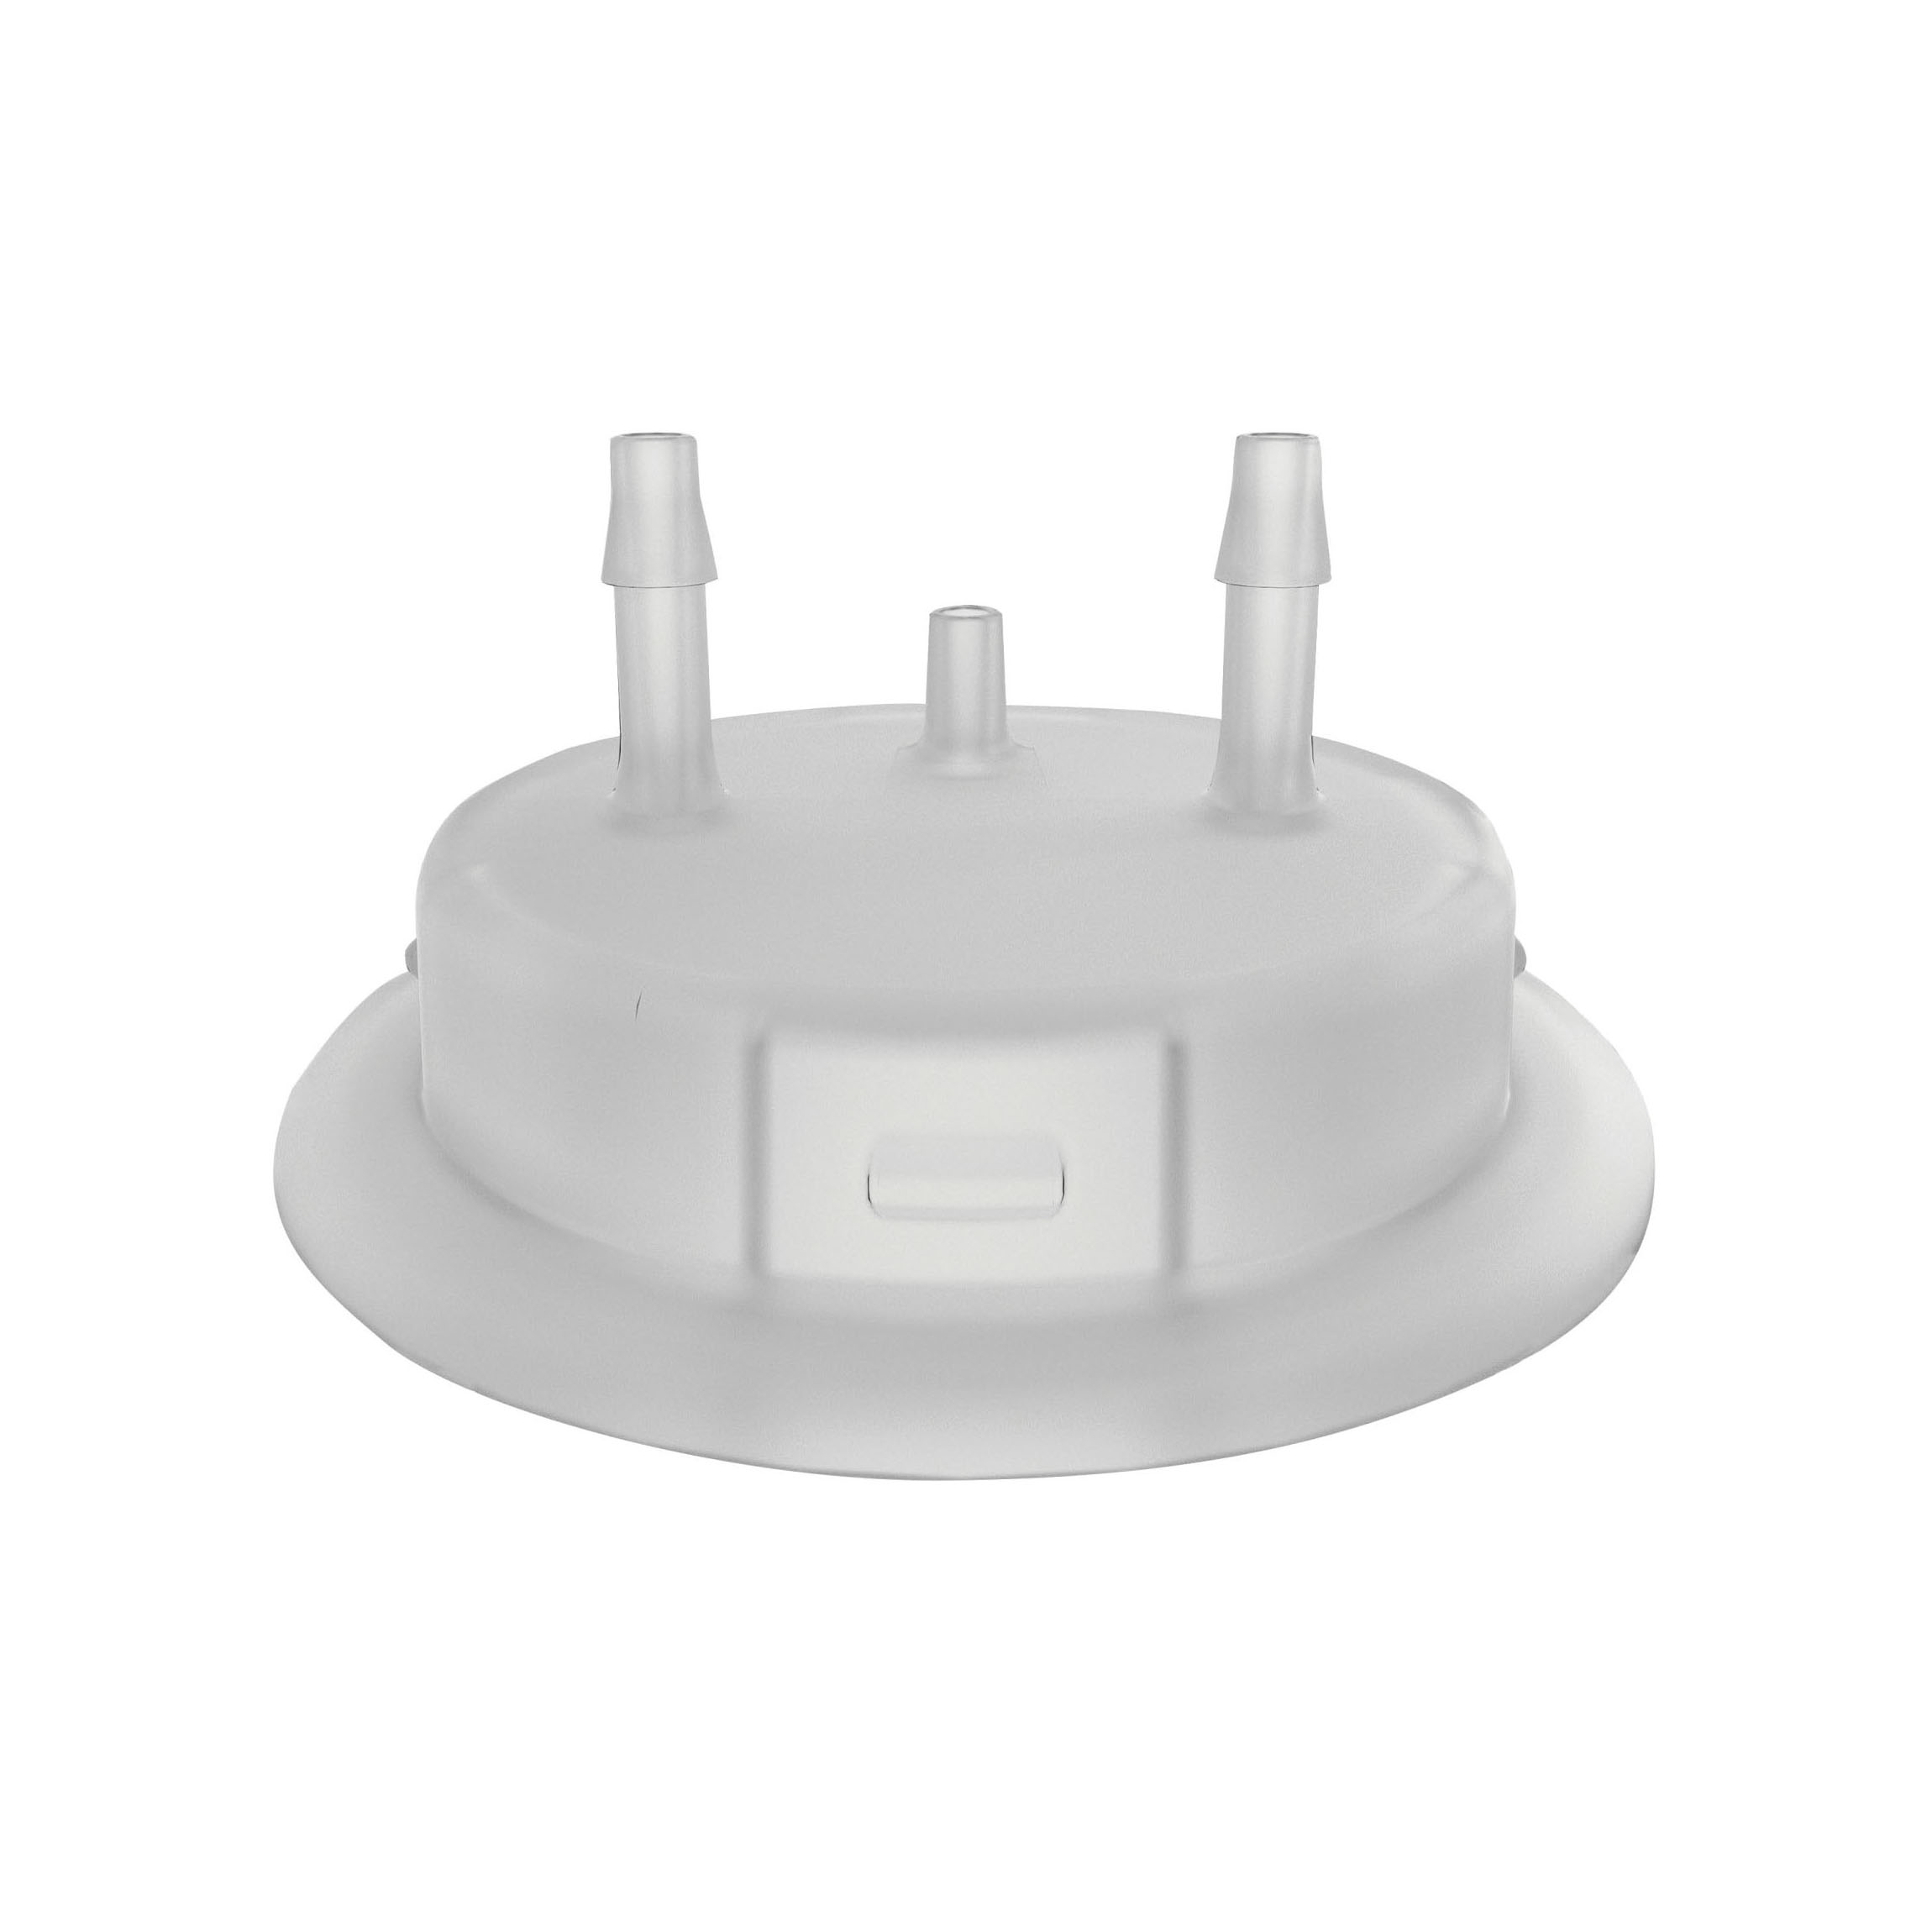 Justrite® 12864 Carboy Cap Adapter With (2) 1/8 in Molded-In Hose Barbs and Vent, 3.2 in Dia x 53 mm Mouth, Polypropylene, White